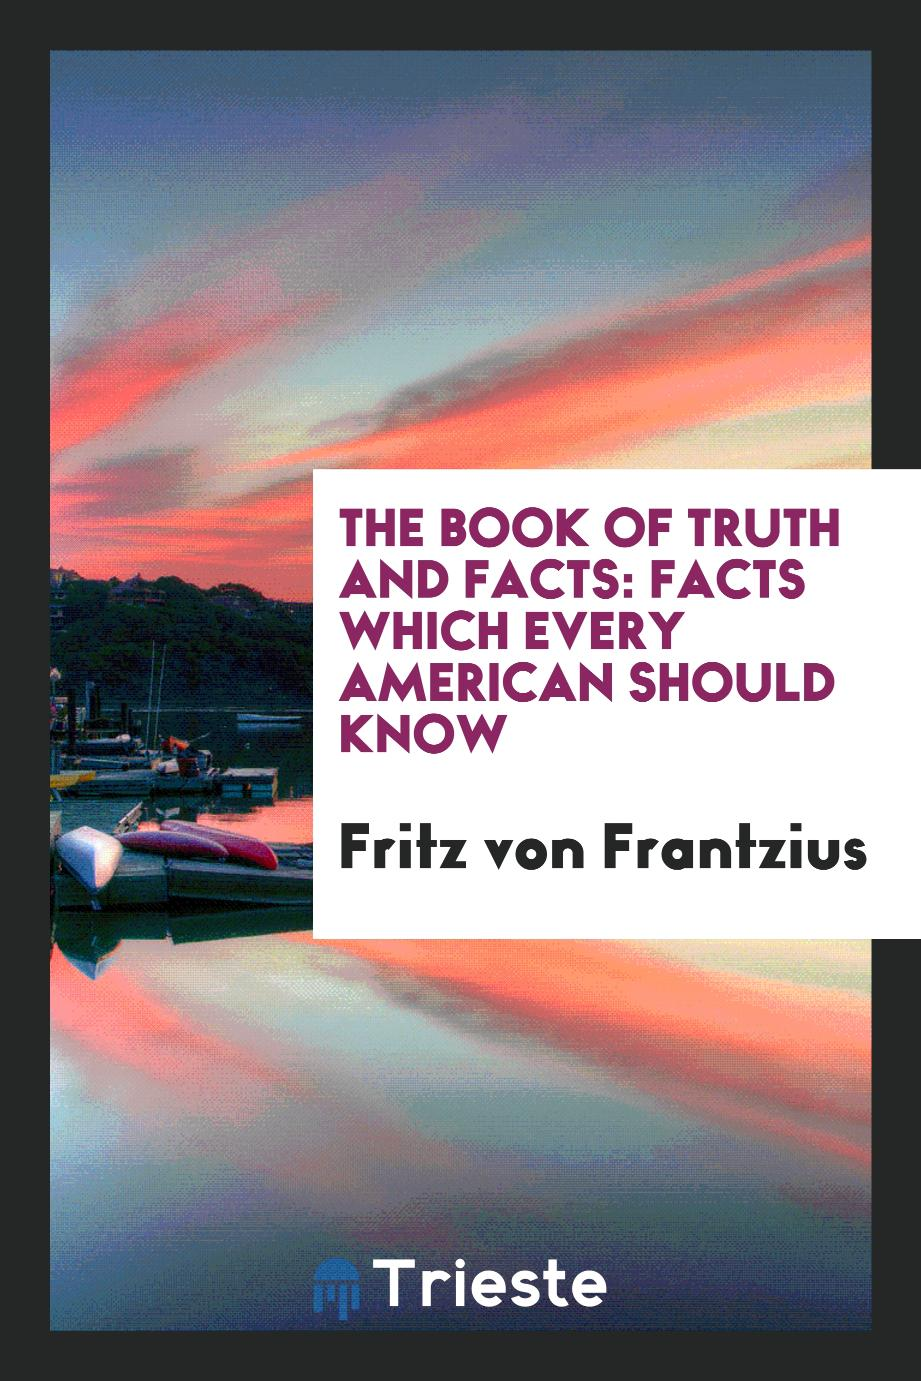 The Book of Truth and Facts: Facts Which Every American Should Know